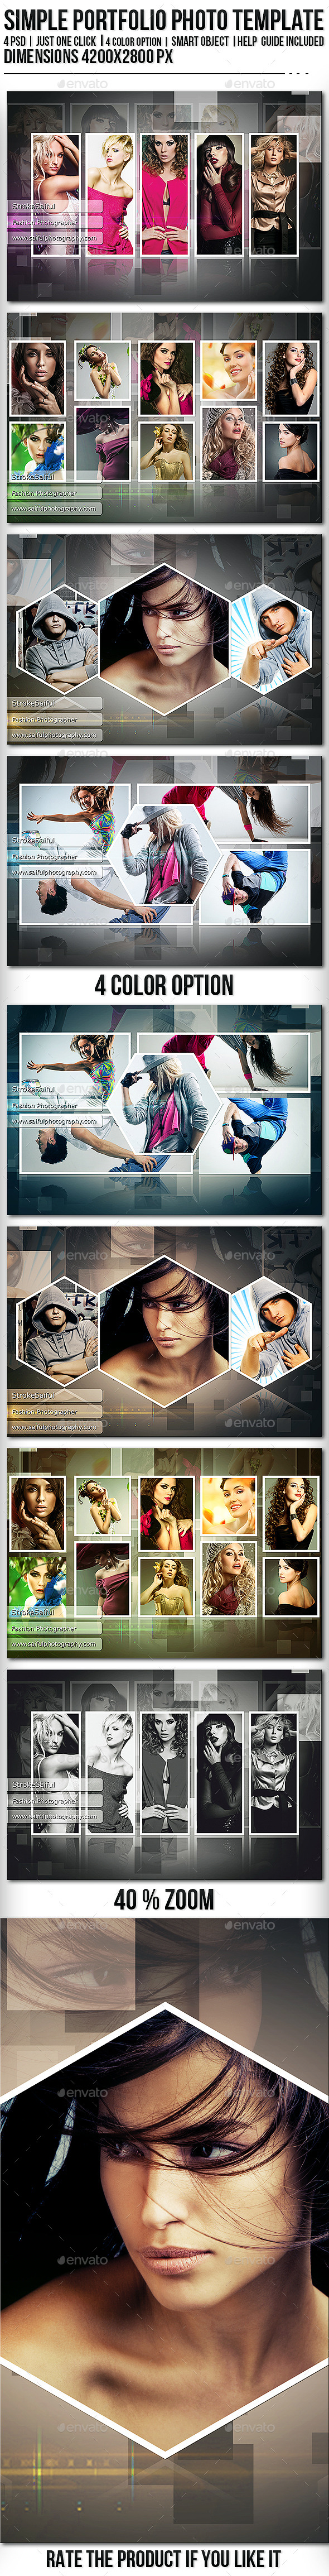 GraphicRiver Simple Portfolio Photo Template 10679264